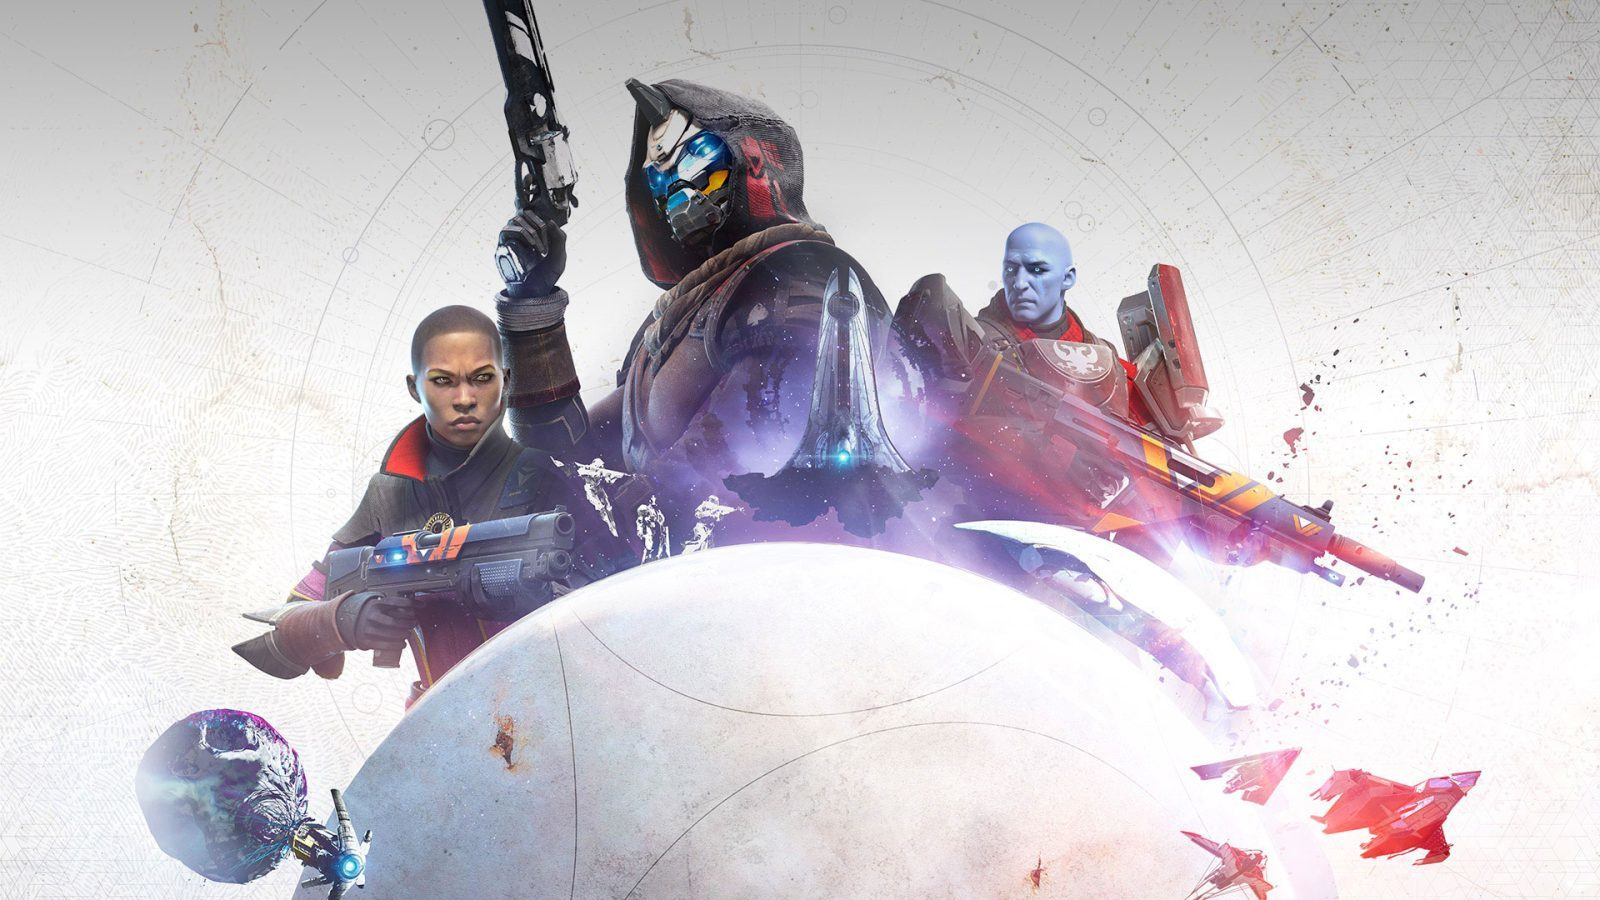 Destiny 2 cross play Activision Bungie downtime New Light Google Stadia